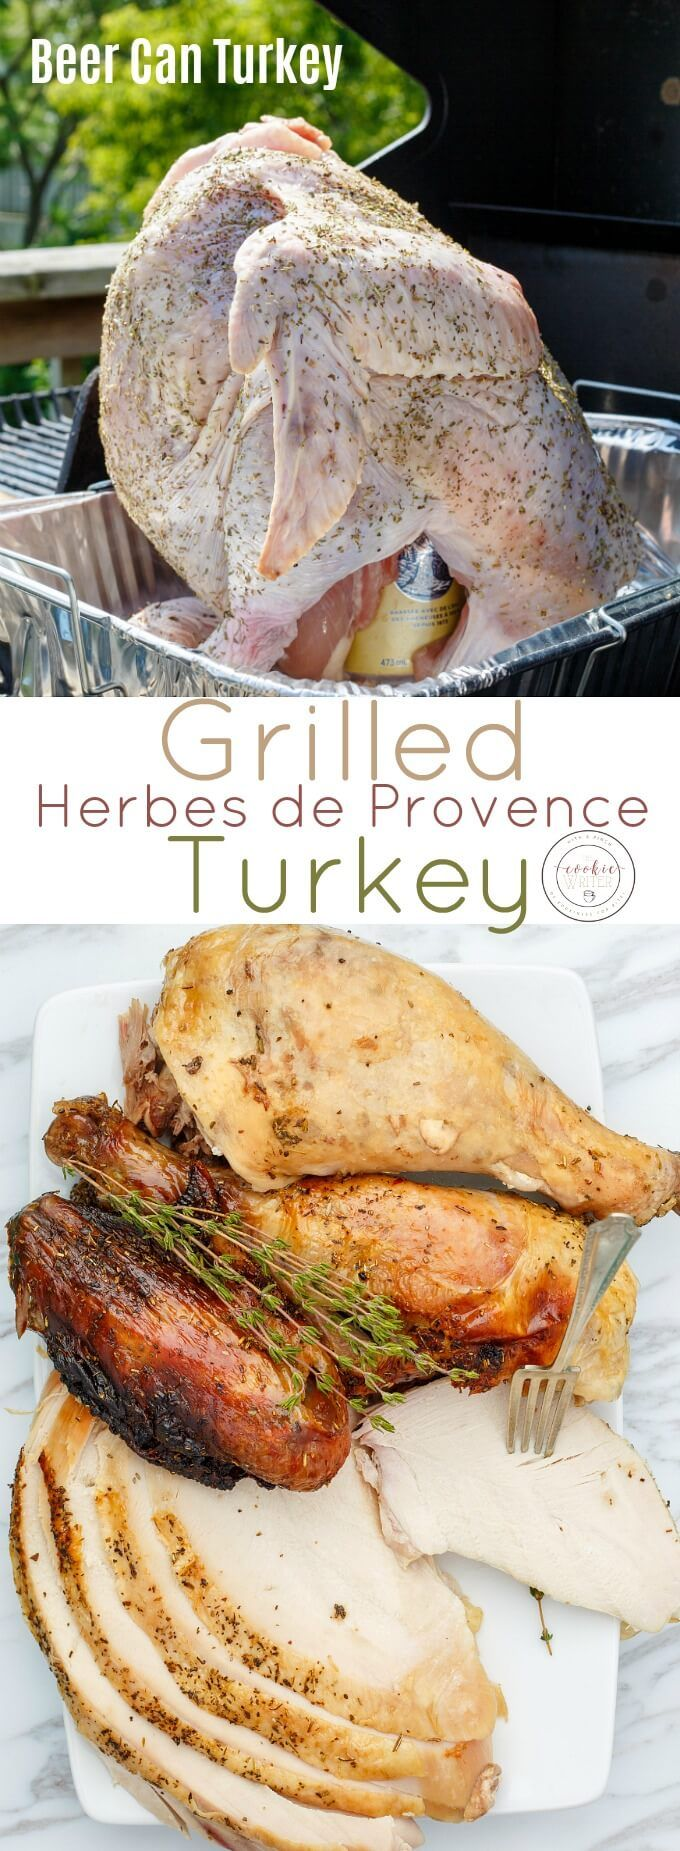 Grilled Herbes de Provence Turkey (Beer Can Turkey)   http://thecookiewriter.com   @thecookiewriter   #sponsored   Thanksgiving, Christmas, Easter, or summer, this on the grill turkey is soooo easy! A tall can helped produce this beer can turkey, and trust me, BBQ turkey should happen all the time!